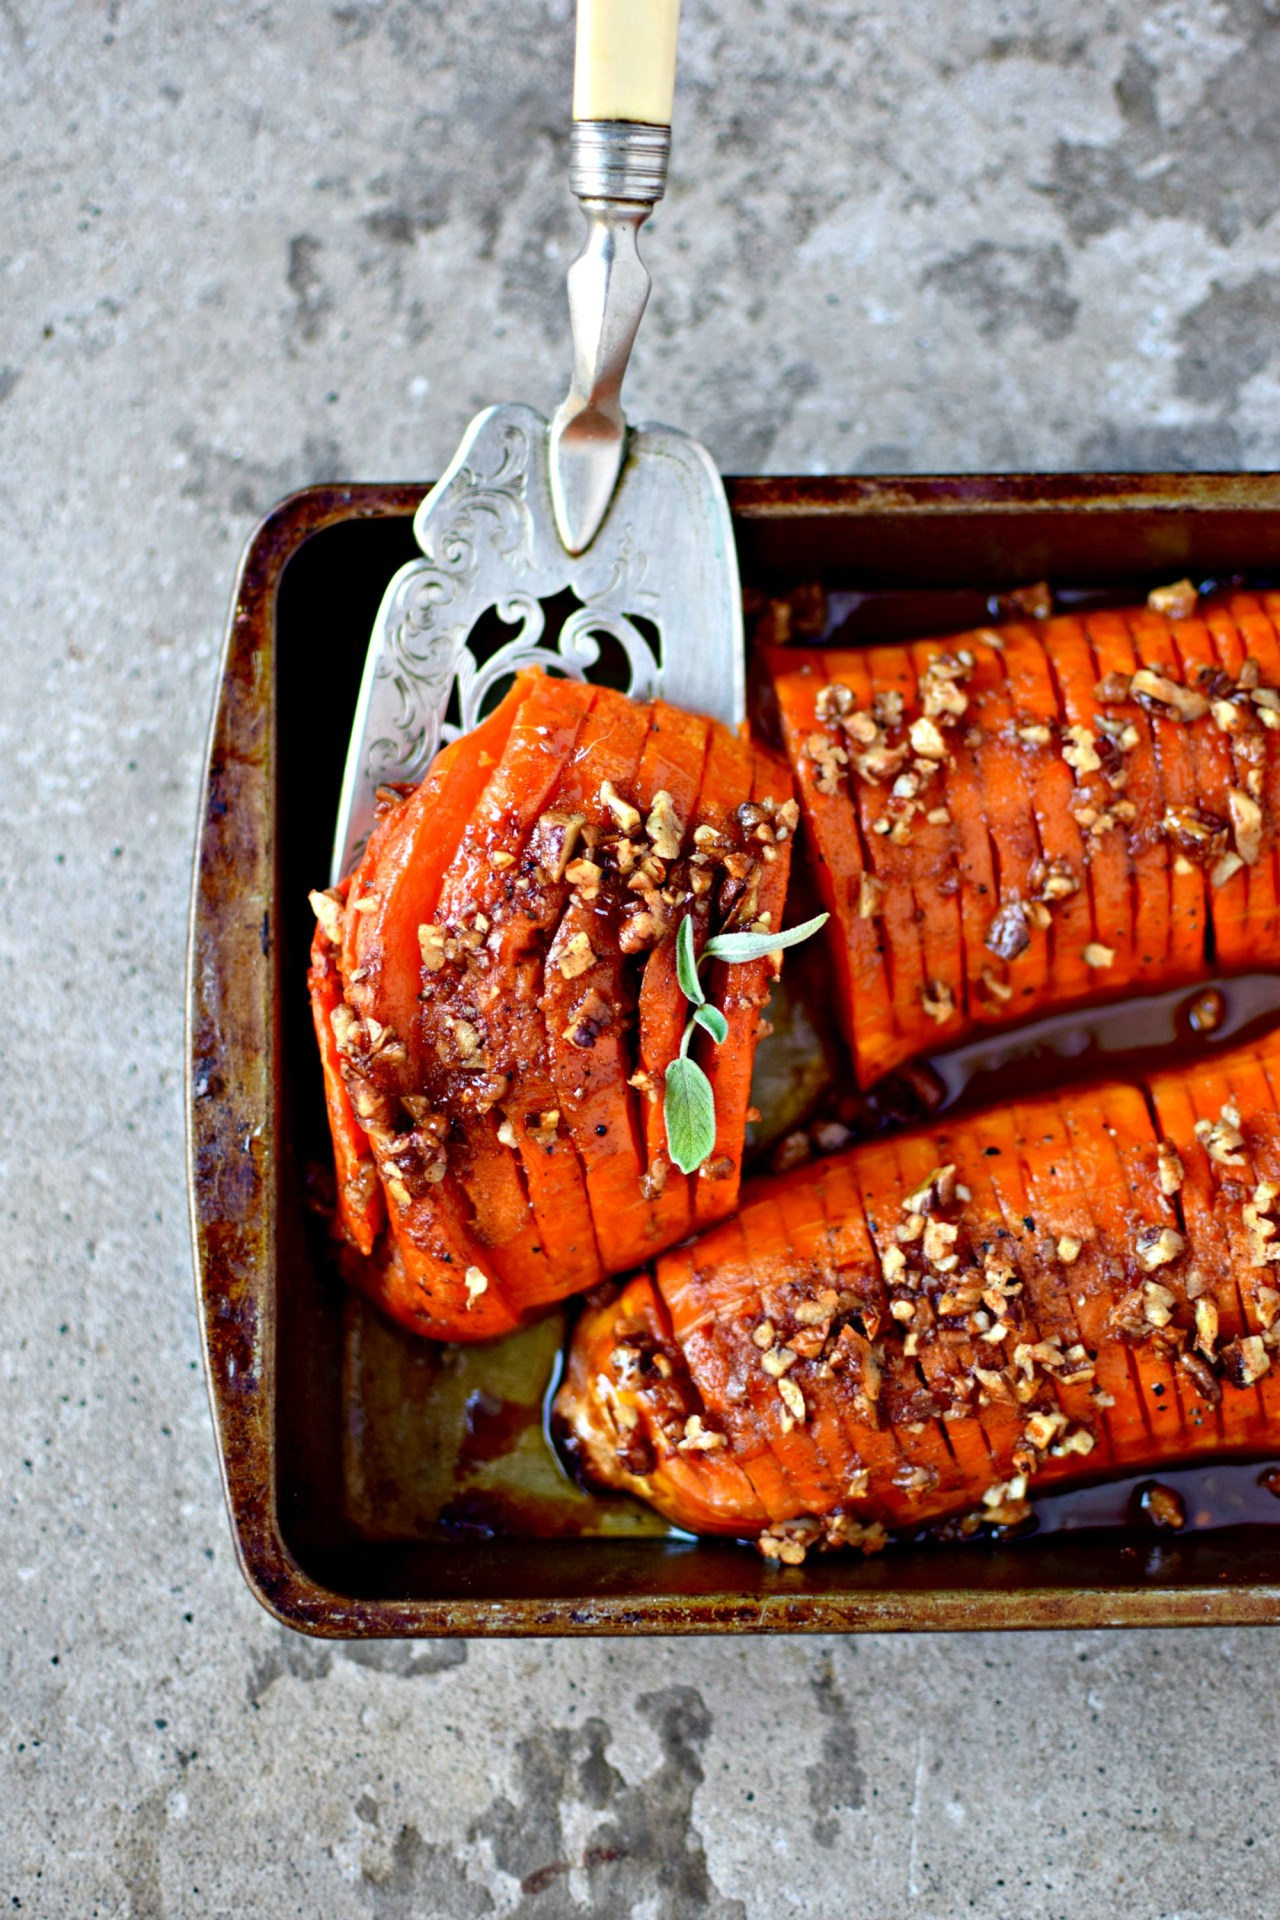 Take the hassle out of hasselback with my easy way of making this cute Thanksgiving or Christmas side dish. Normally seen on white potatoes, hasselback is also the perfect way to spruce up sweet potatoes or butternut squash. By part-baking before slicing and slicking with the flavourings, you save your fingers and your sanity. Top tip!